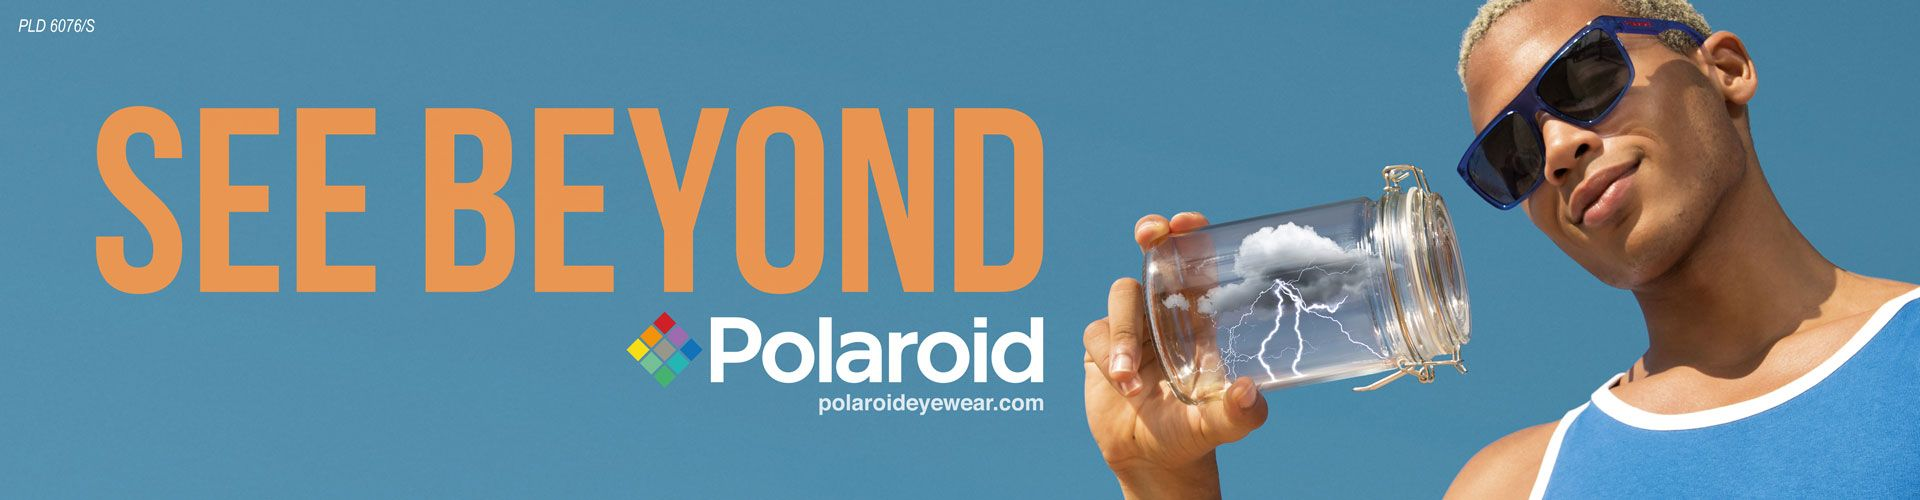 Shop Polaroid Sunglasses - model Pld 6076/S featured